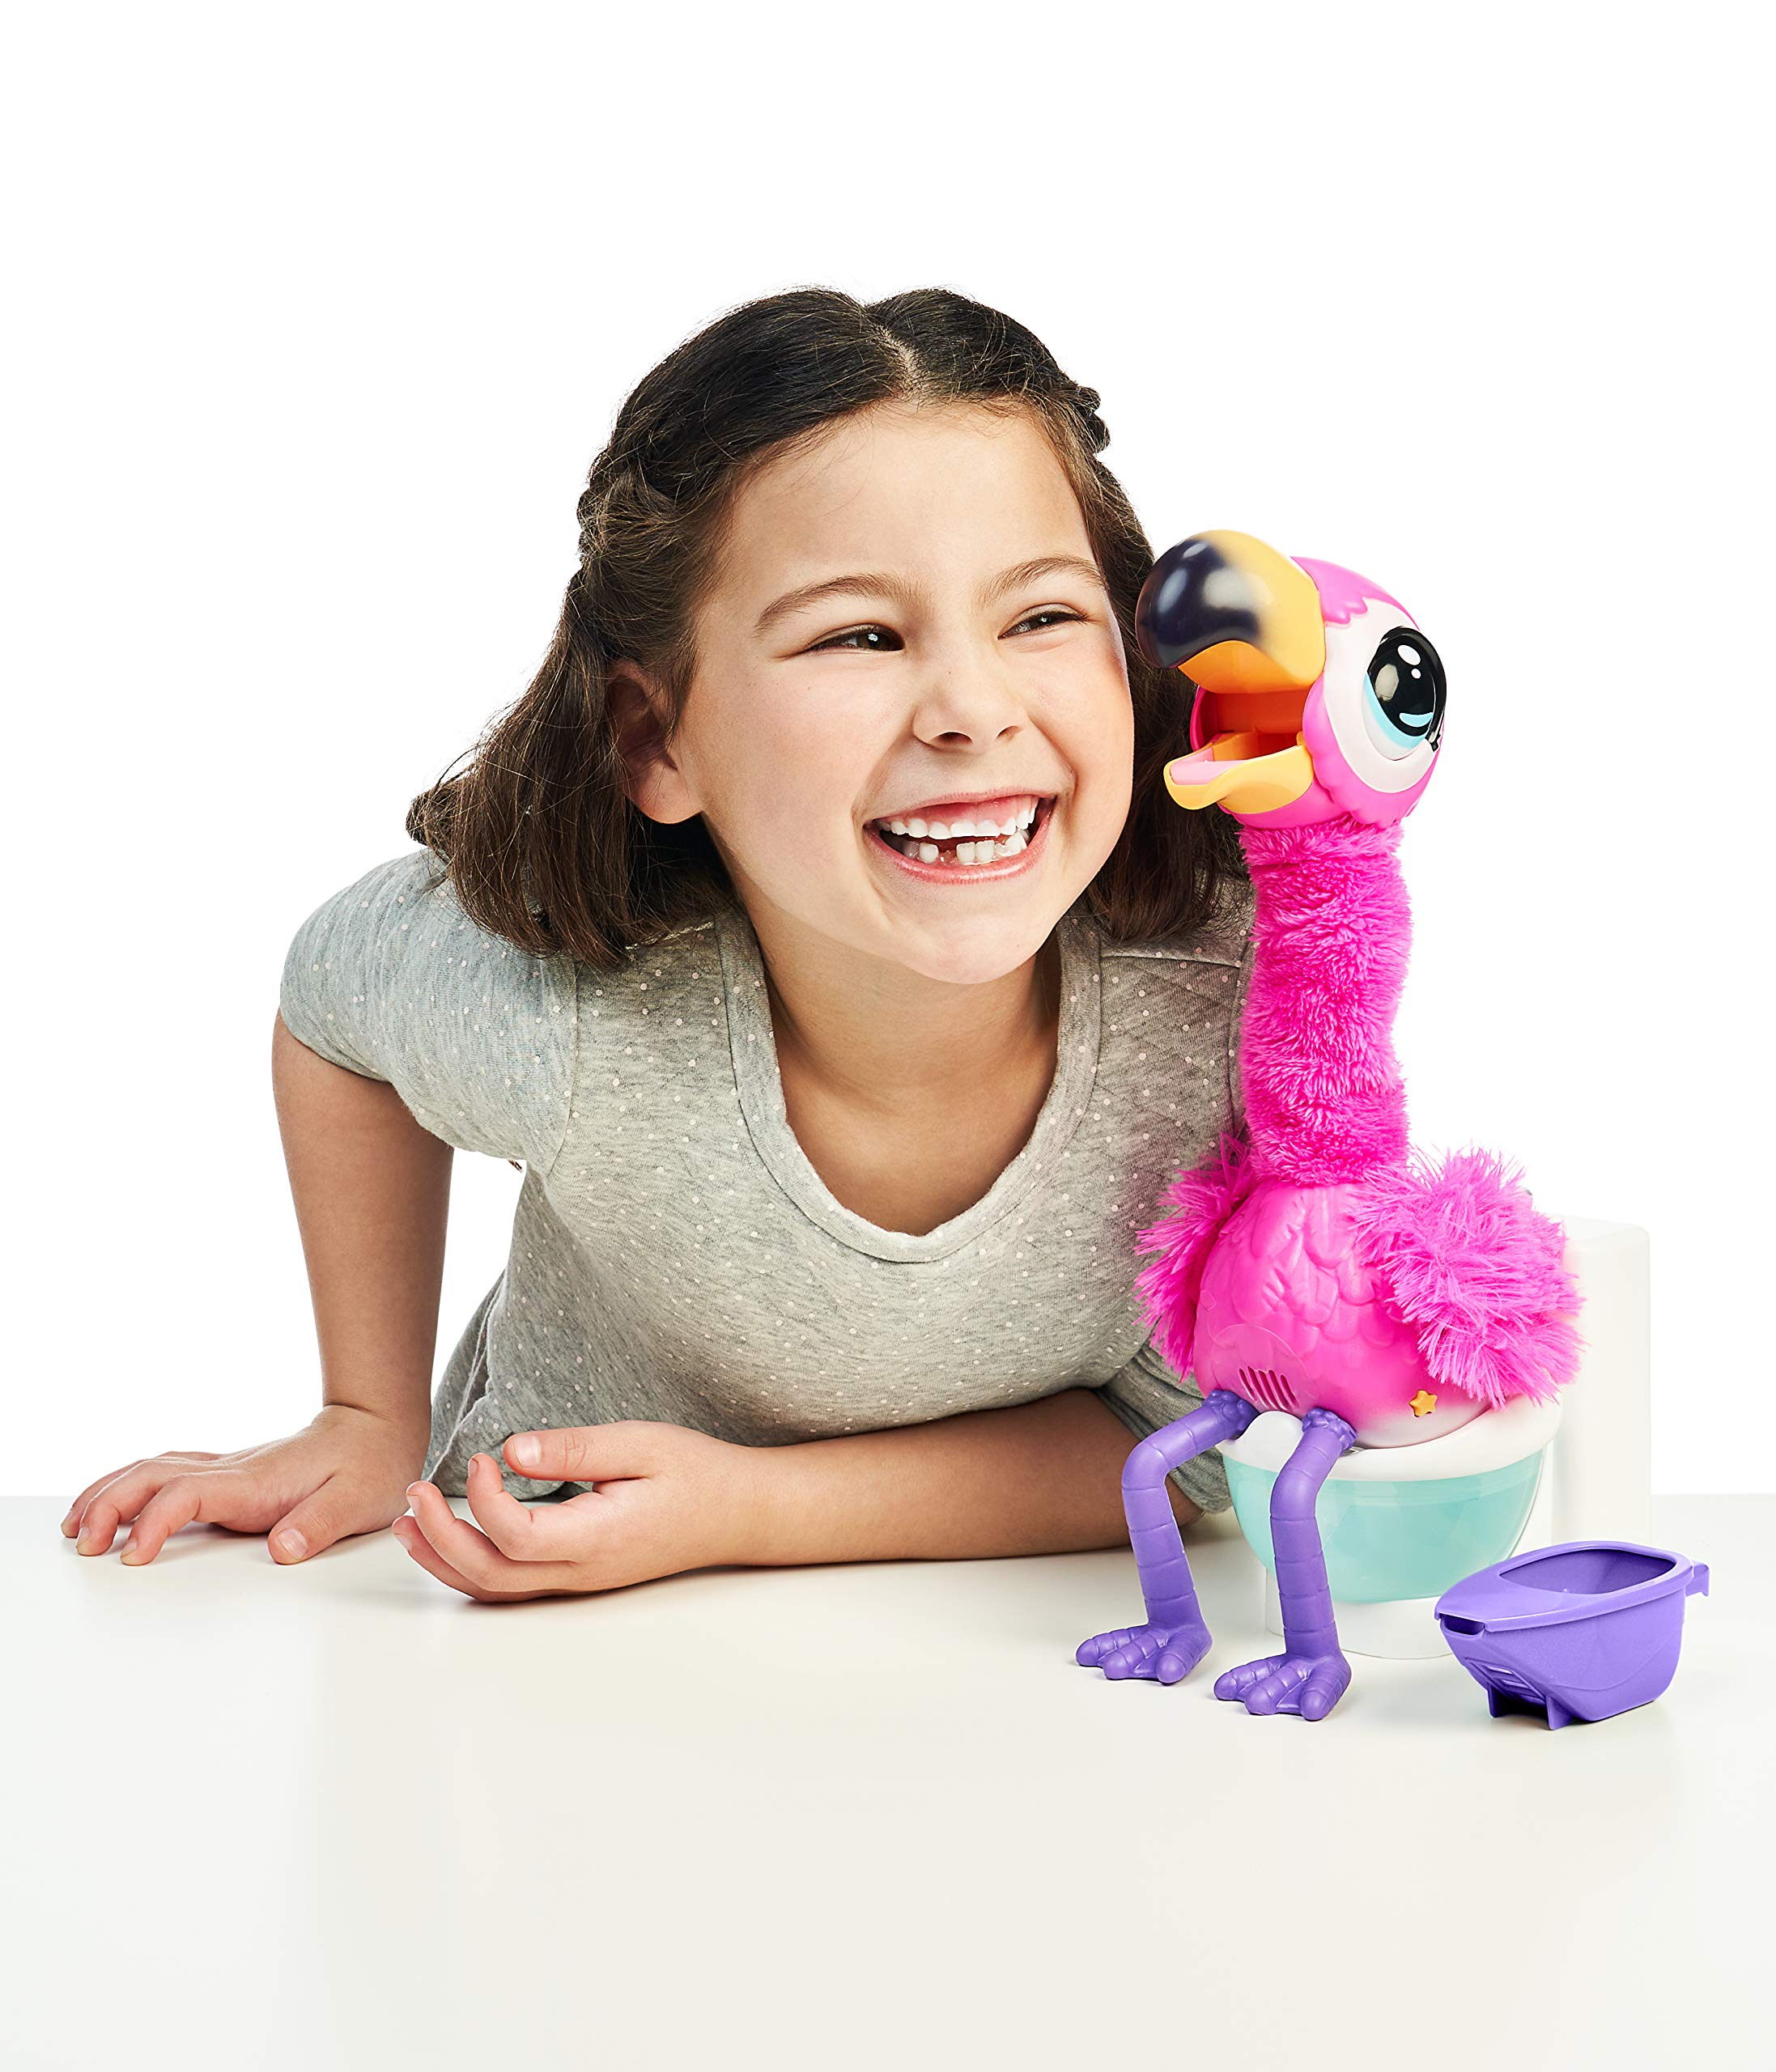 Little Live Pets Gotta Go Flamingo   Interactive Plush Toy That Eats, Sings, Wiggles, Poops and Talks (Batteries Included)   Reusable Food. Ages 4+, Multicolor